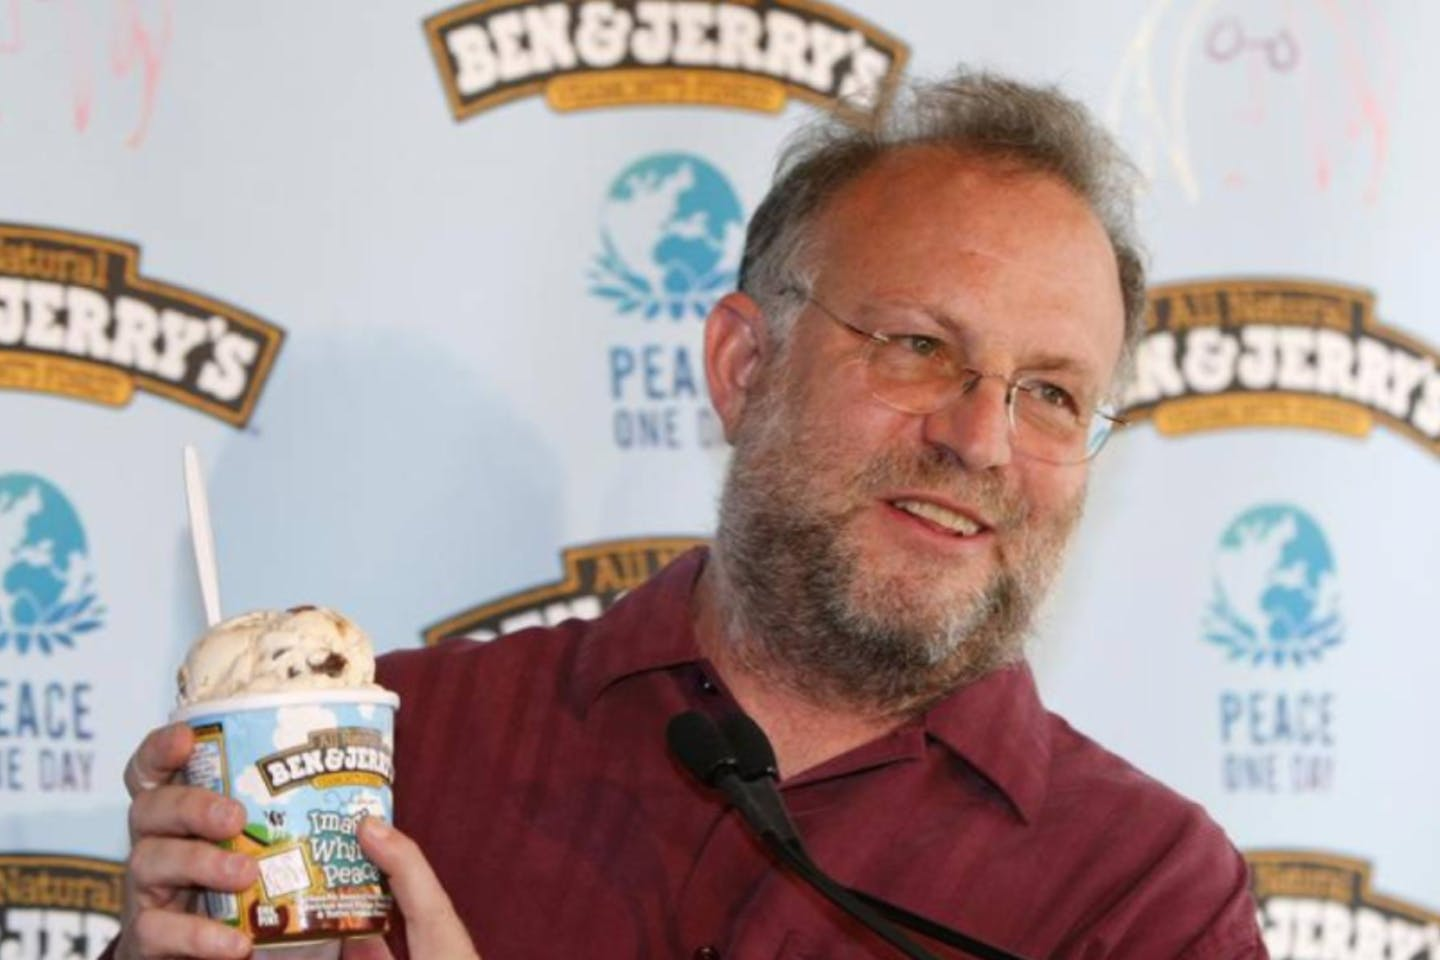 Jerry Greenfield, co-founder of Ben & Jerry's